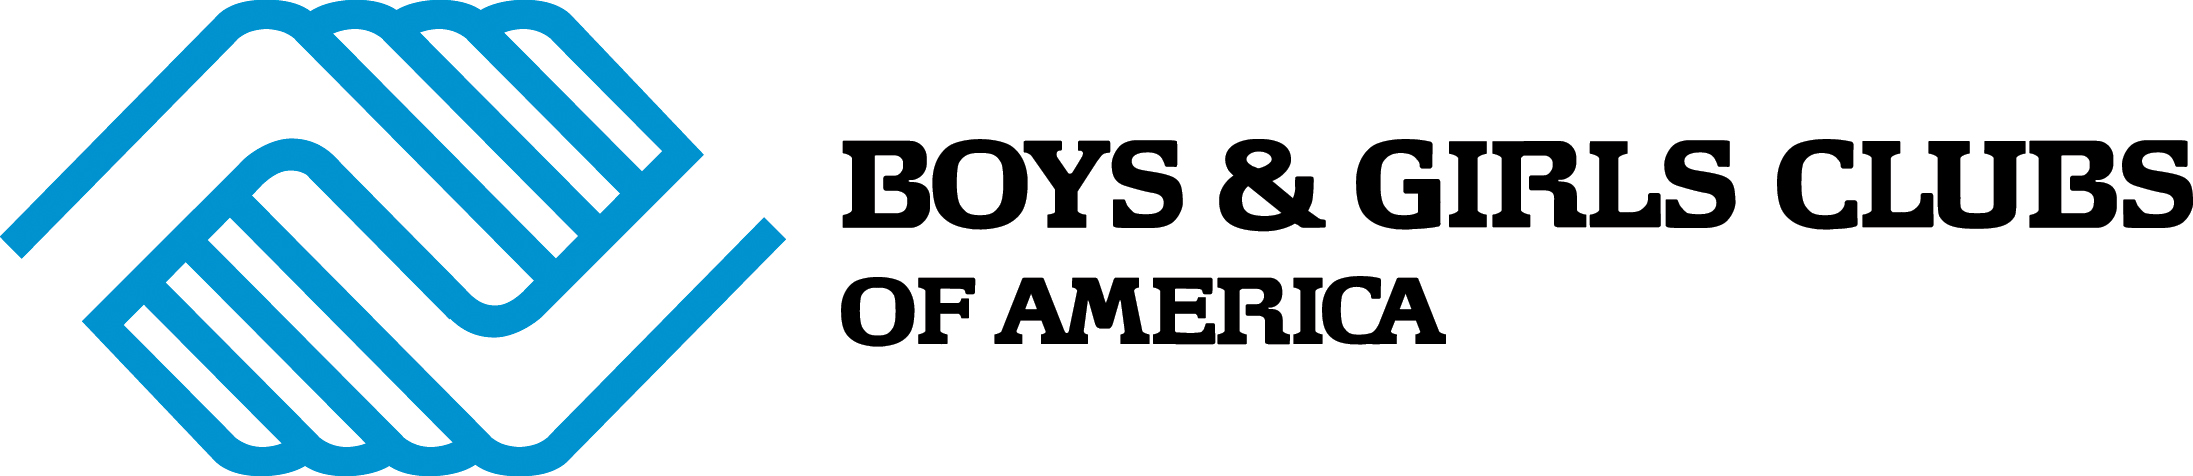 Boys And Girls Club Of America   Hot Girls Wallpaper 2193x476